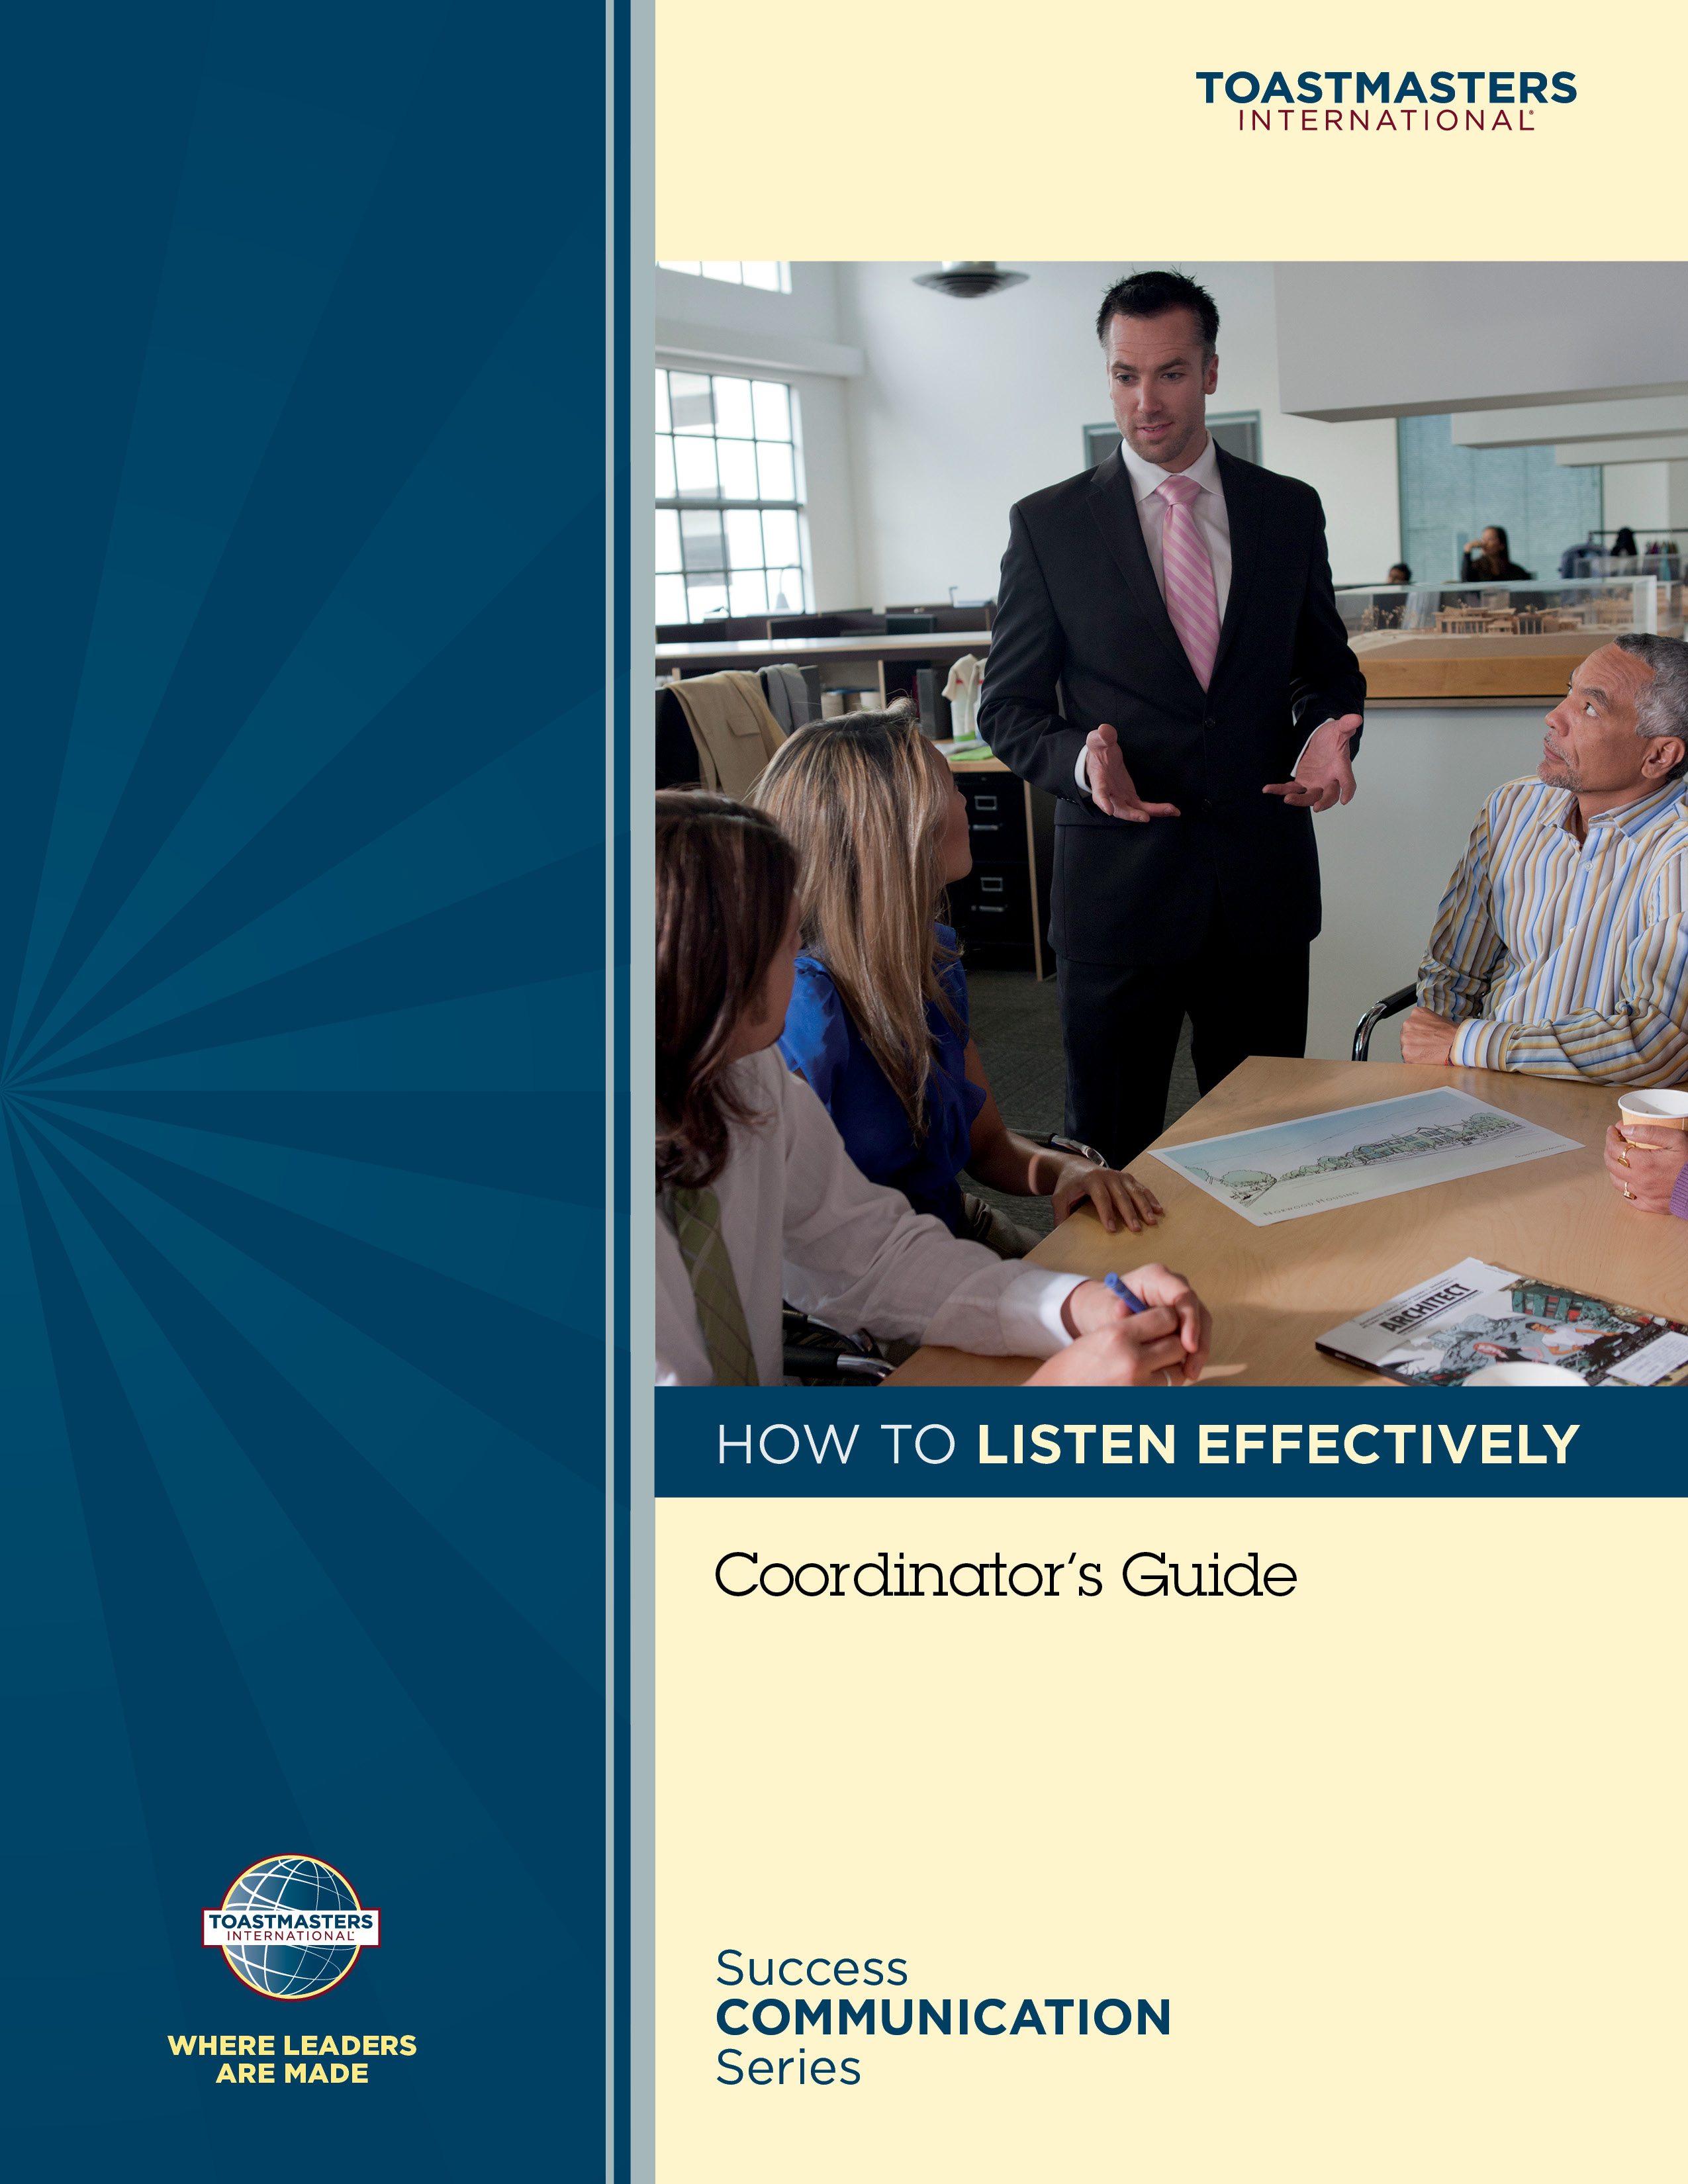 How to Listen Effectively Workshop Coordinator's Guide